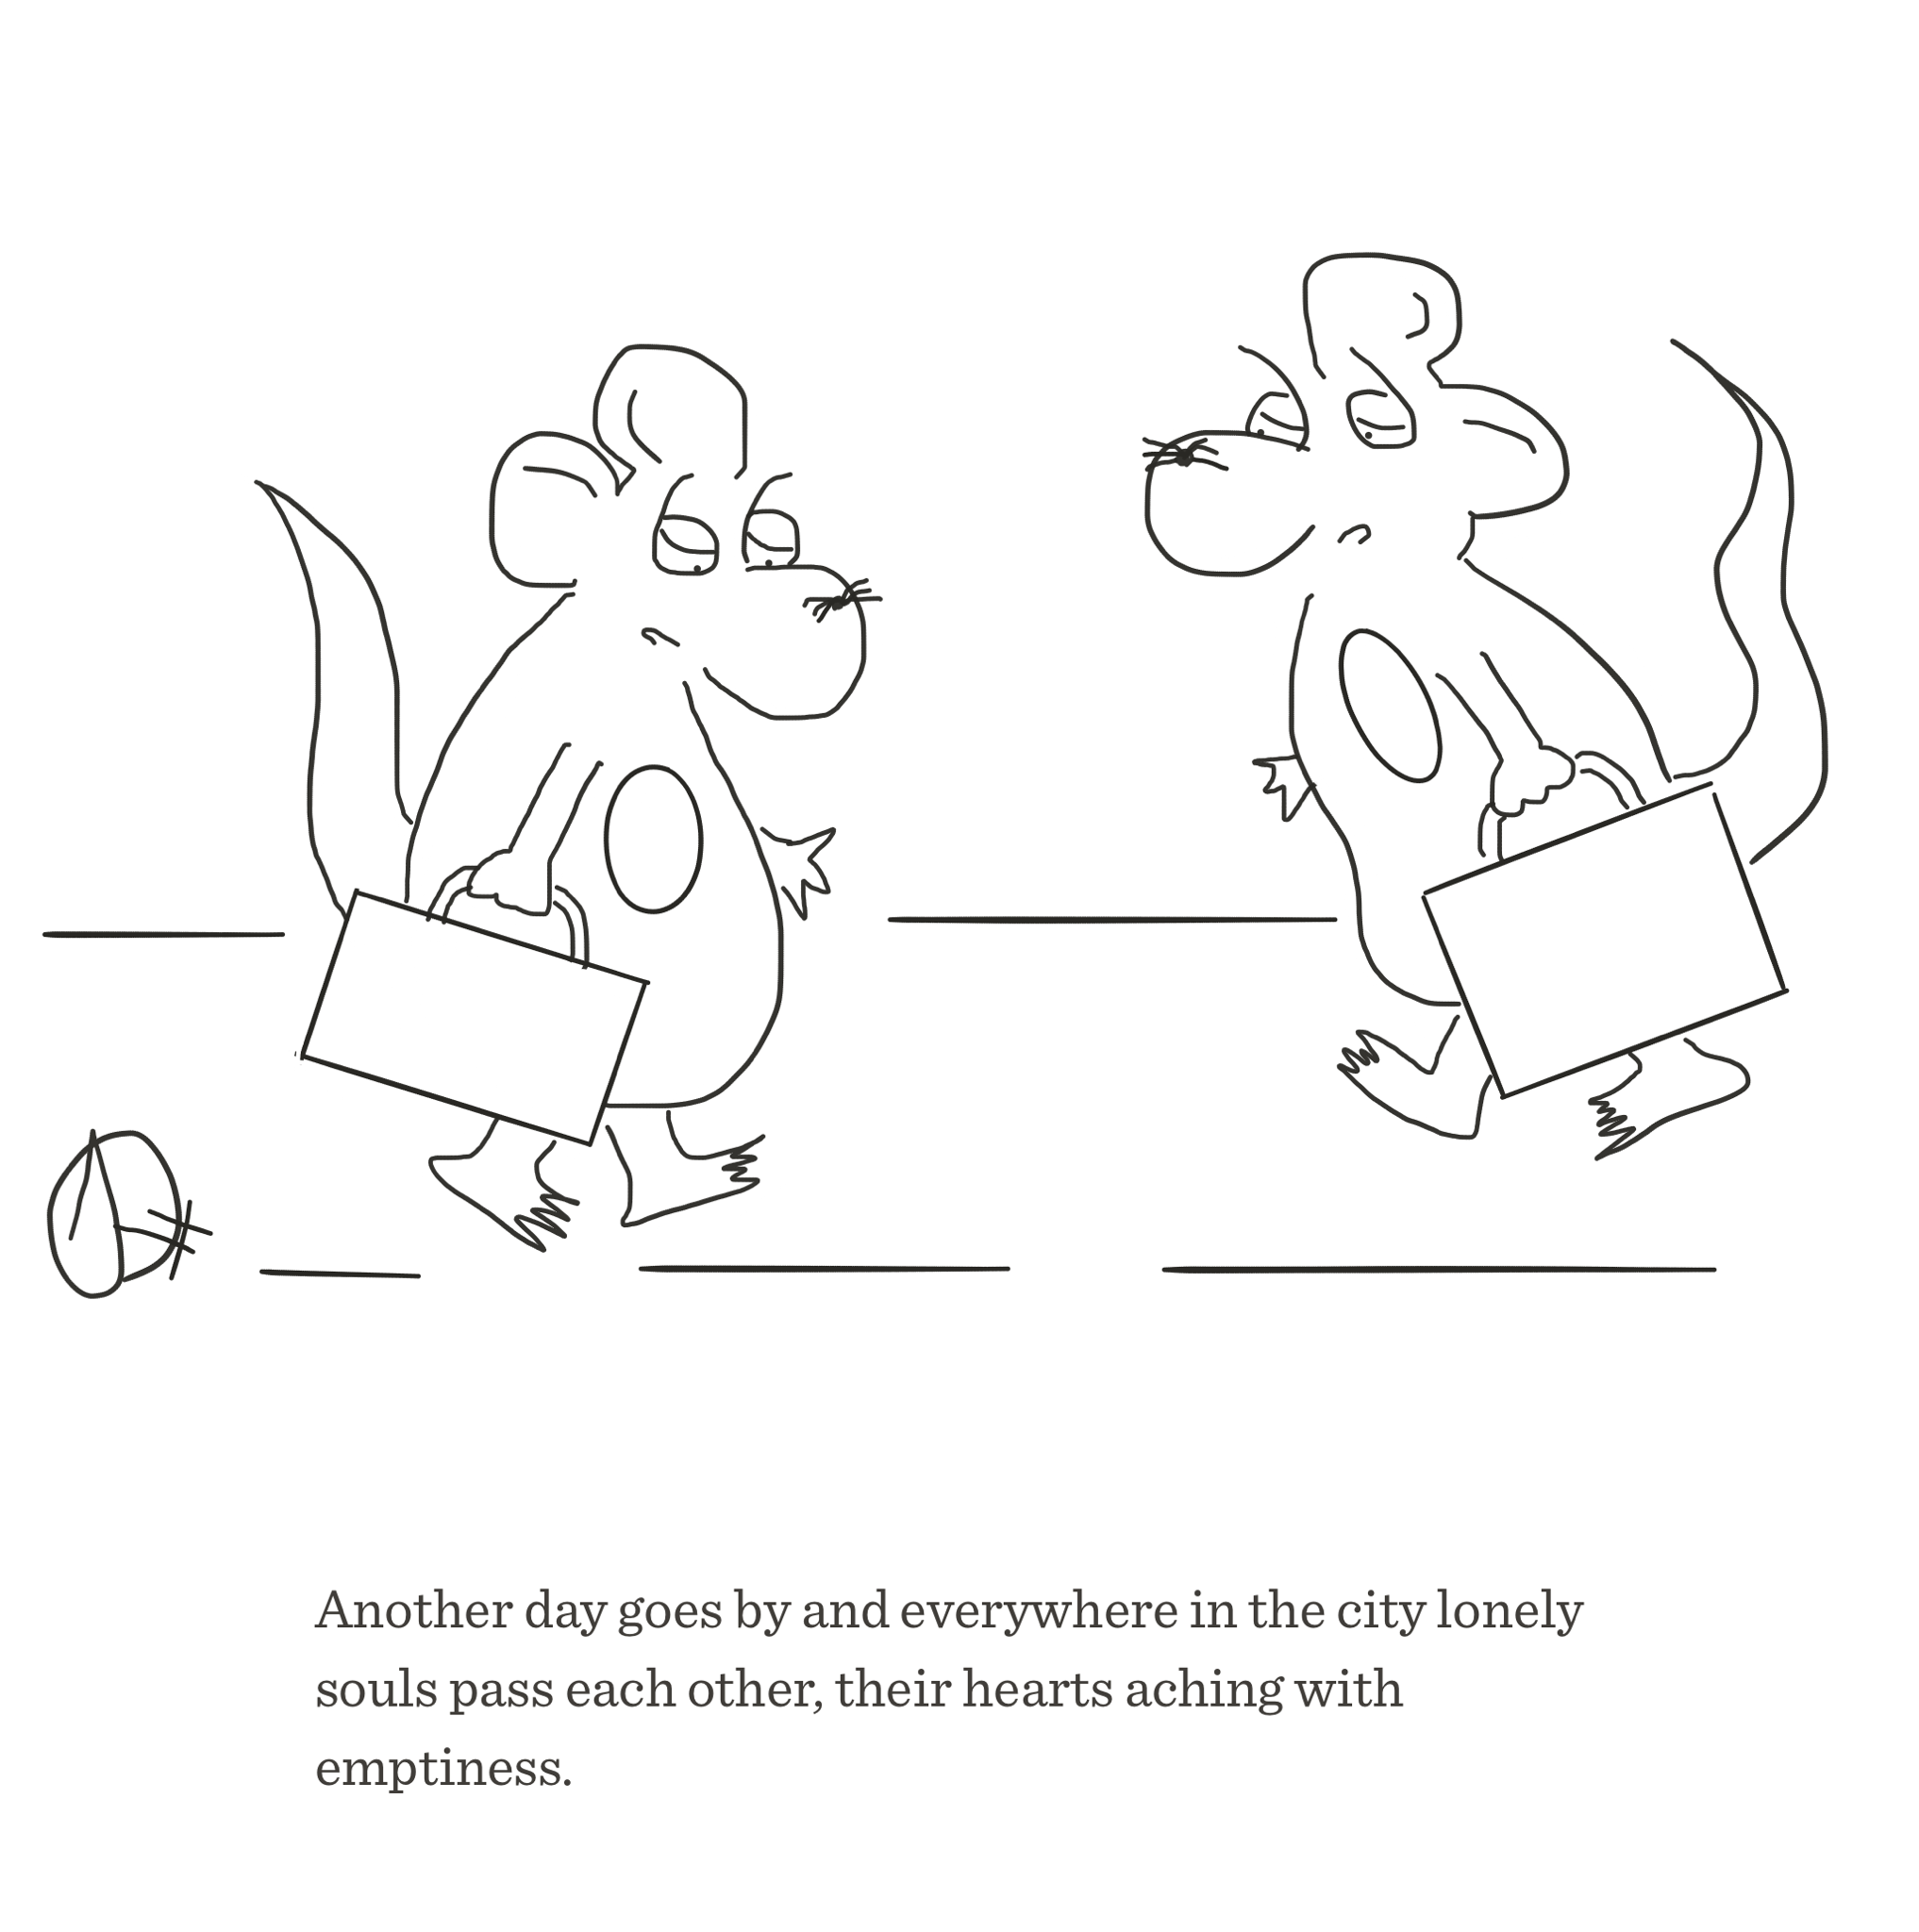 Lonely souls, The Happy Rat cartoon